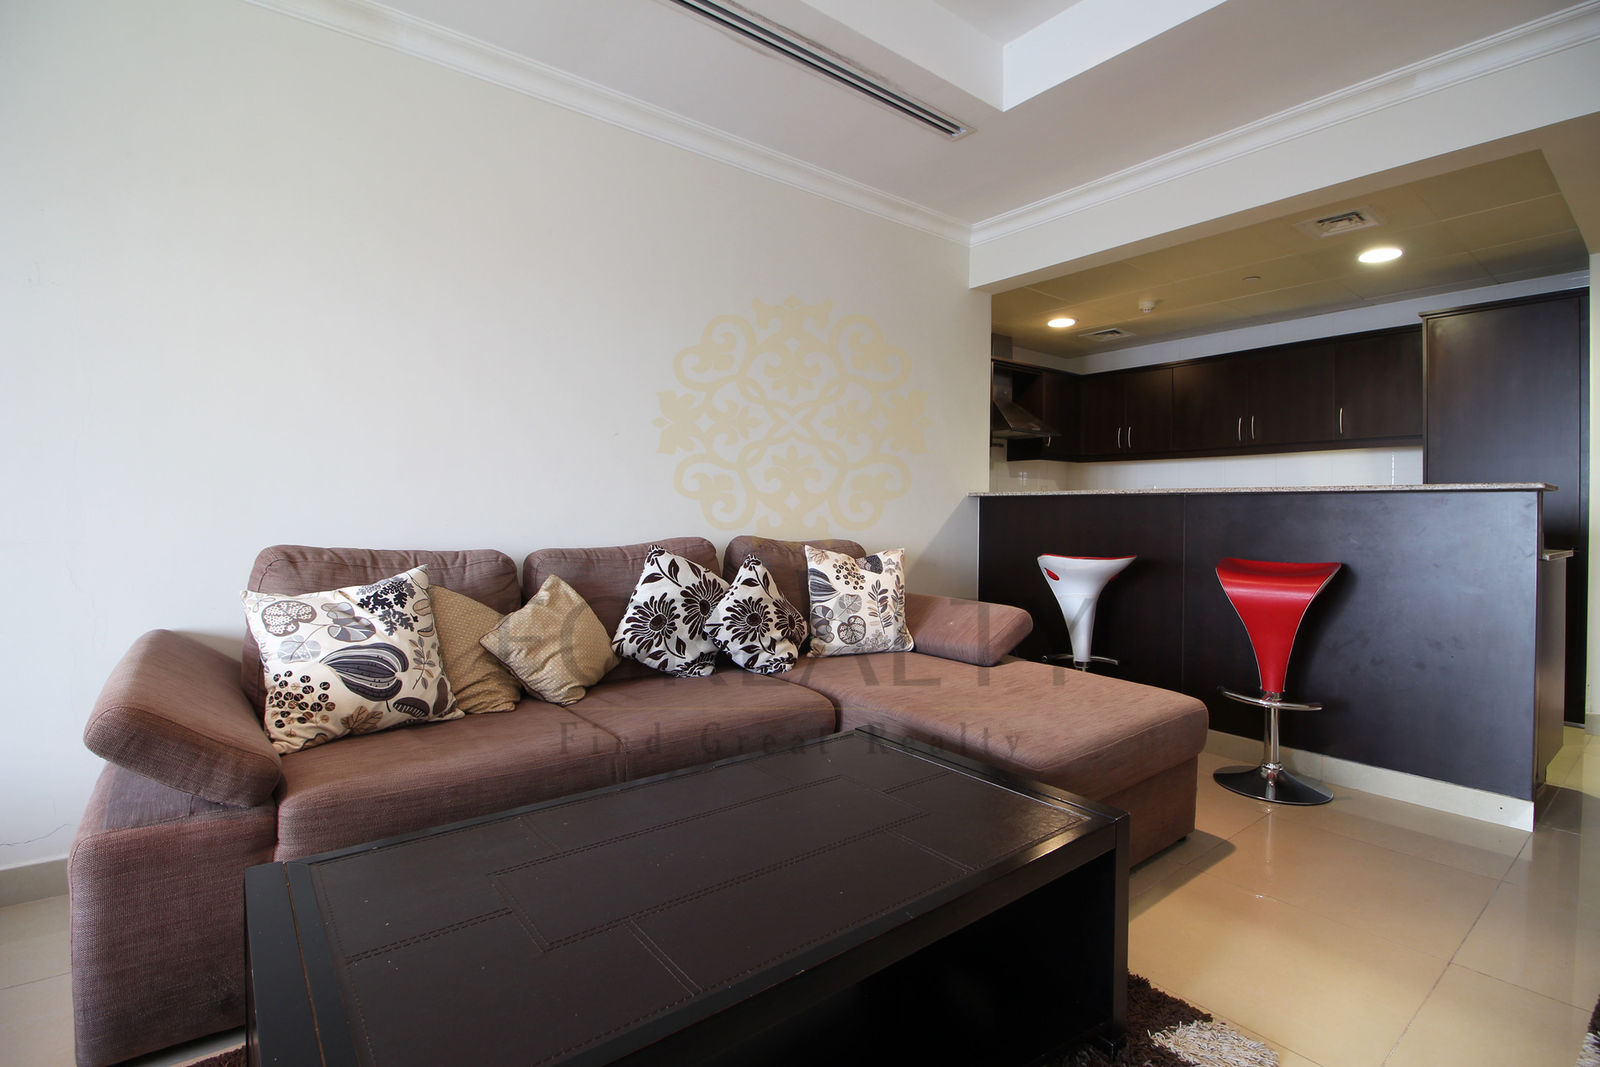 fully furnished sanitised apartments and villas for rent - read to move in